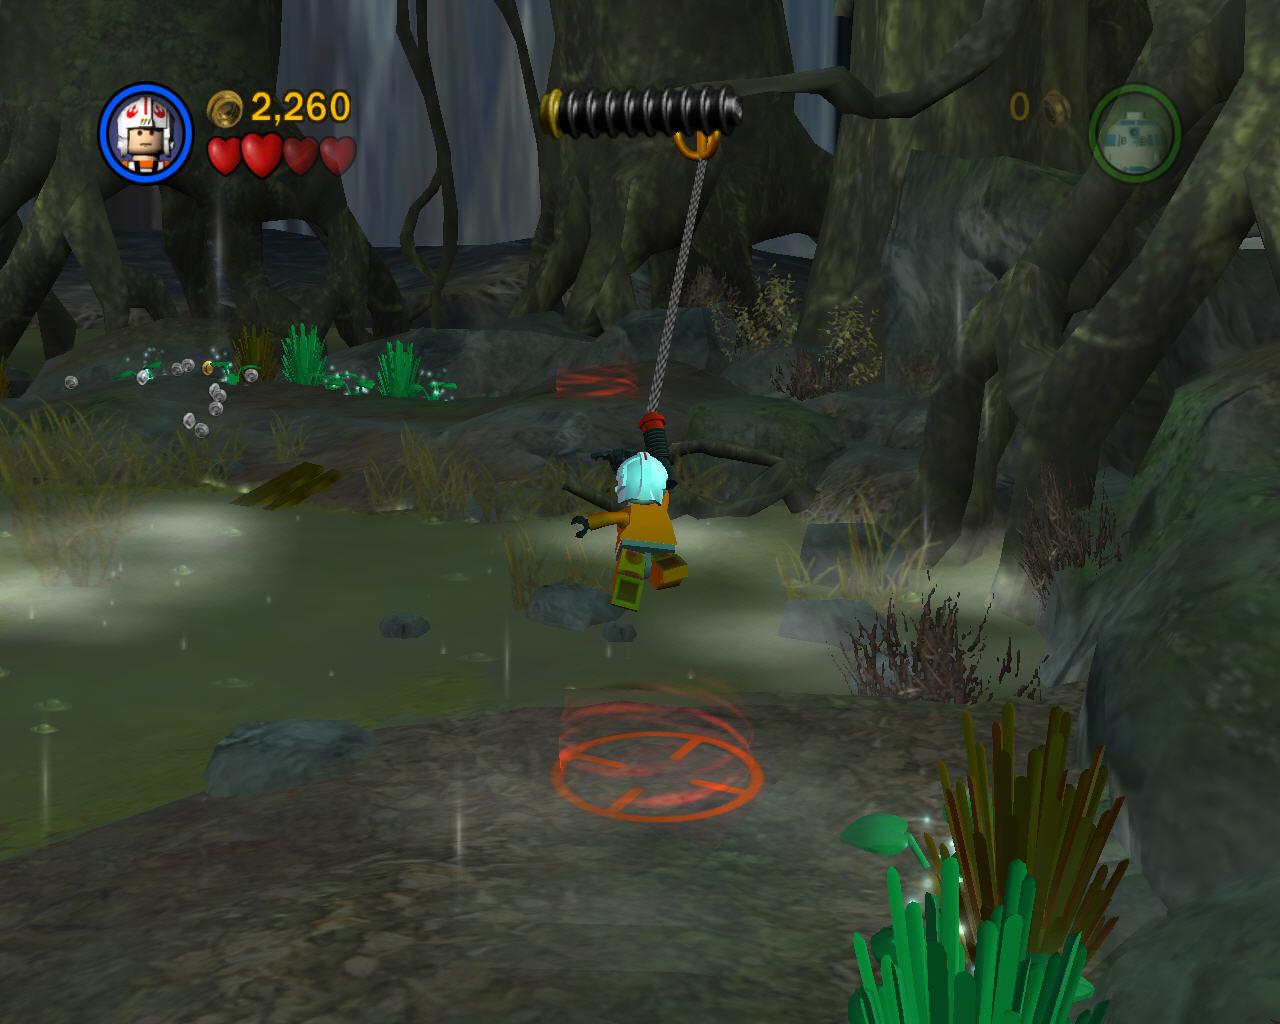 LEGO Star Wars II: The Original Trilogy Windows Blaster characters can use grappling hooks.